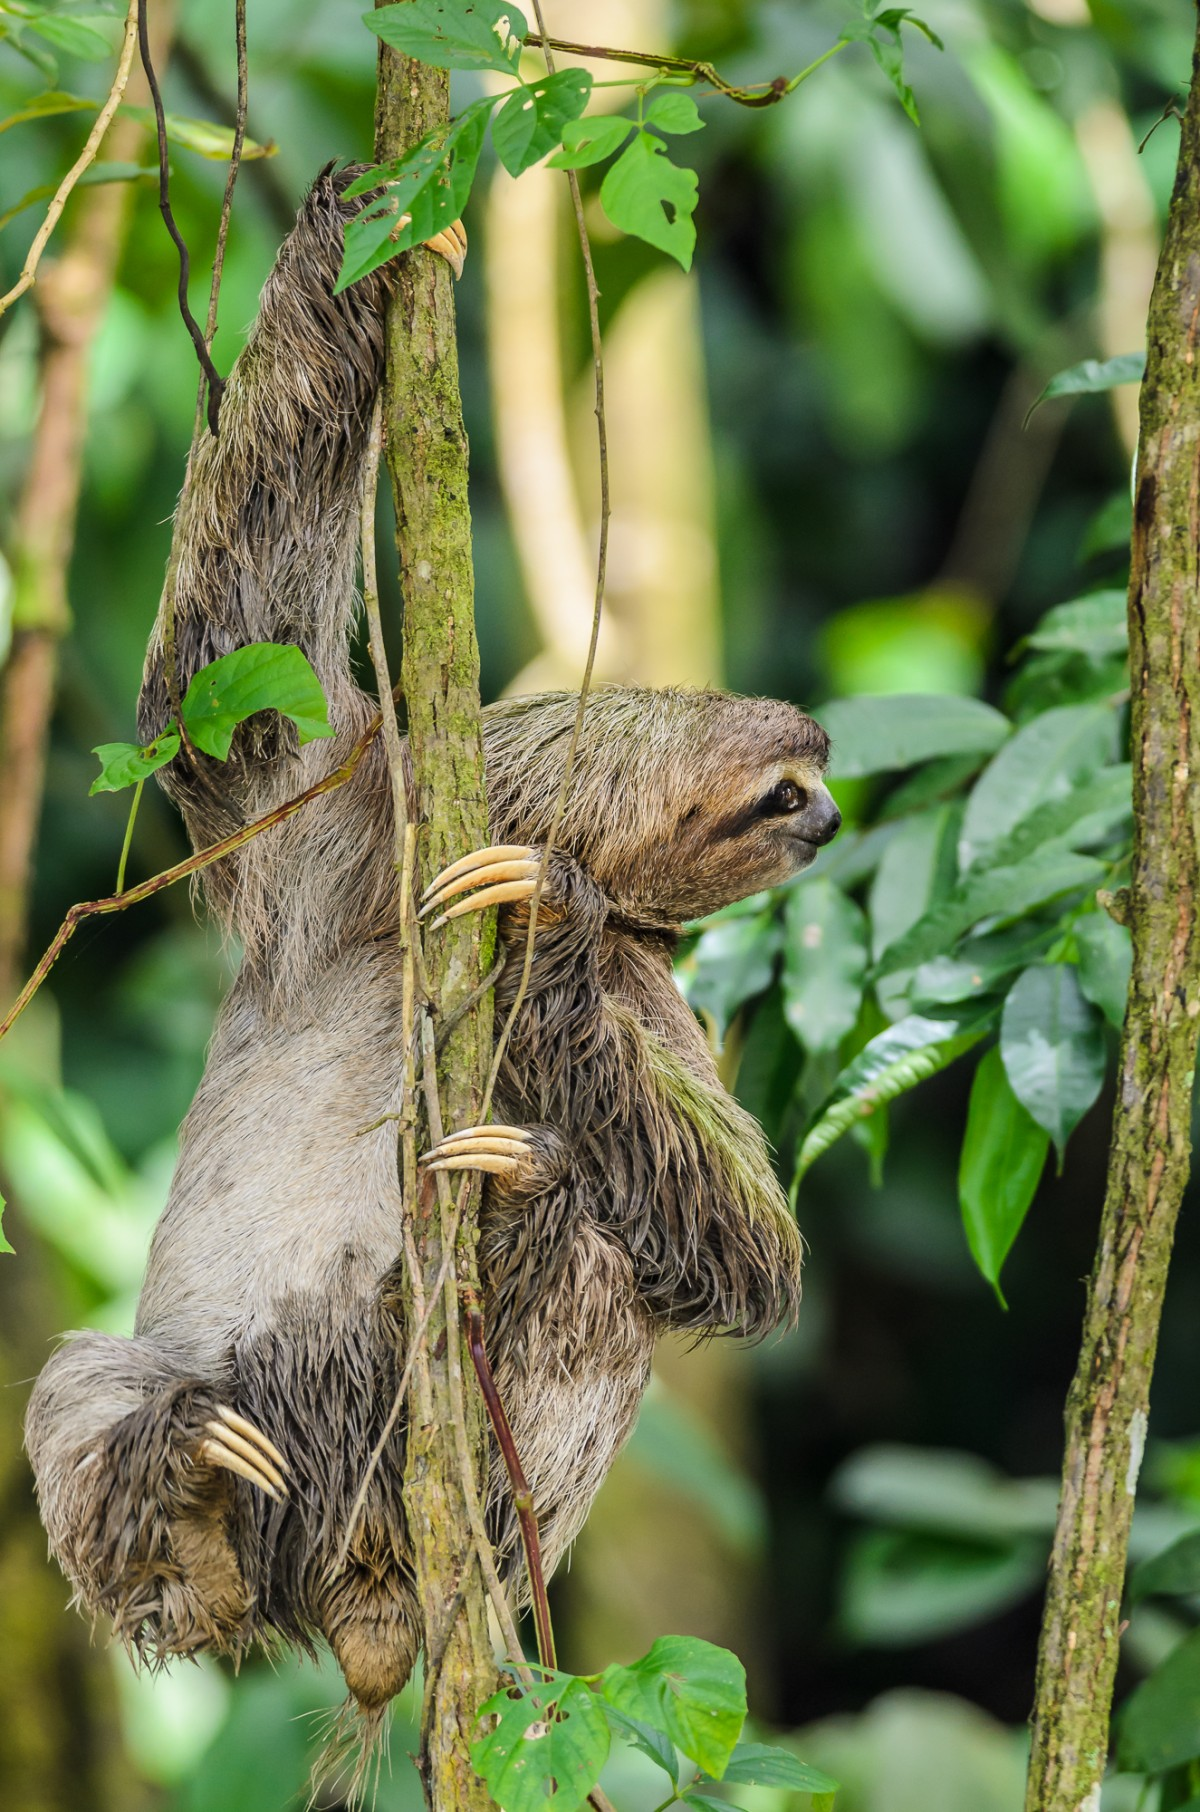 Brown-throated sloth (Bradypus variegatus) climbing in a tree in the rainforest of Costa Rica.